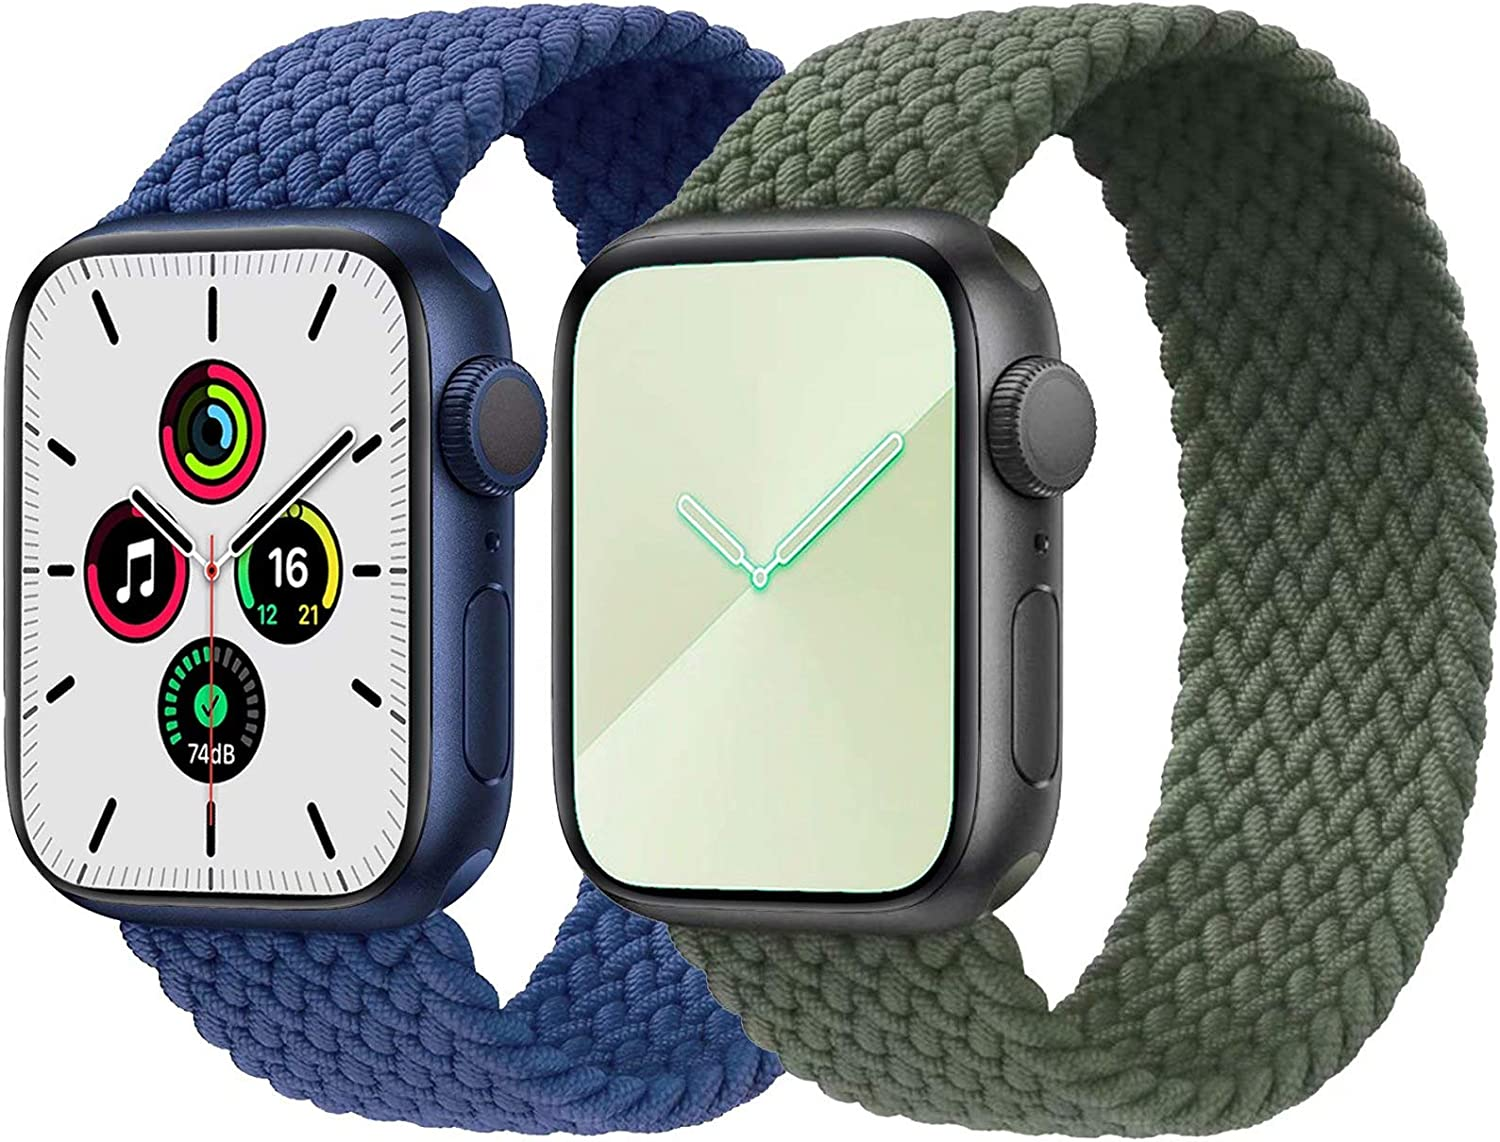 2-Pack Solo Loop Strap Compatible with Apple Watch Band 42mm 44mm,No Clasps No Buckles Stretchable Braided Sport Elastics Replacement Wristband for iWatch Series 6/5/4/3/2/1,SE,Blue&Green,7#